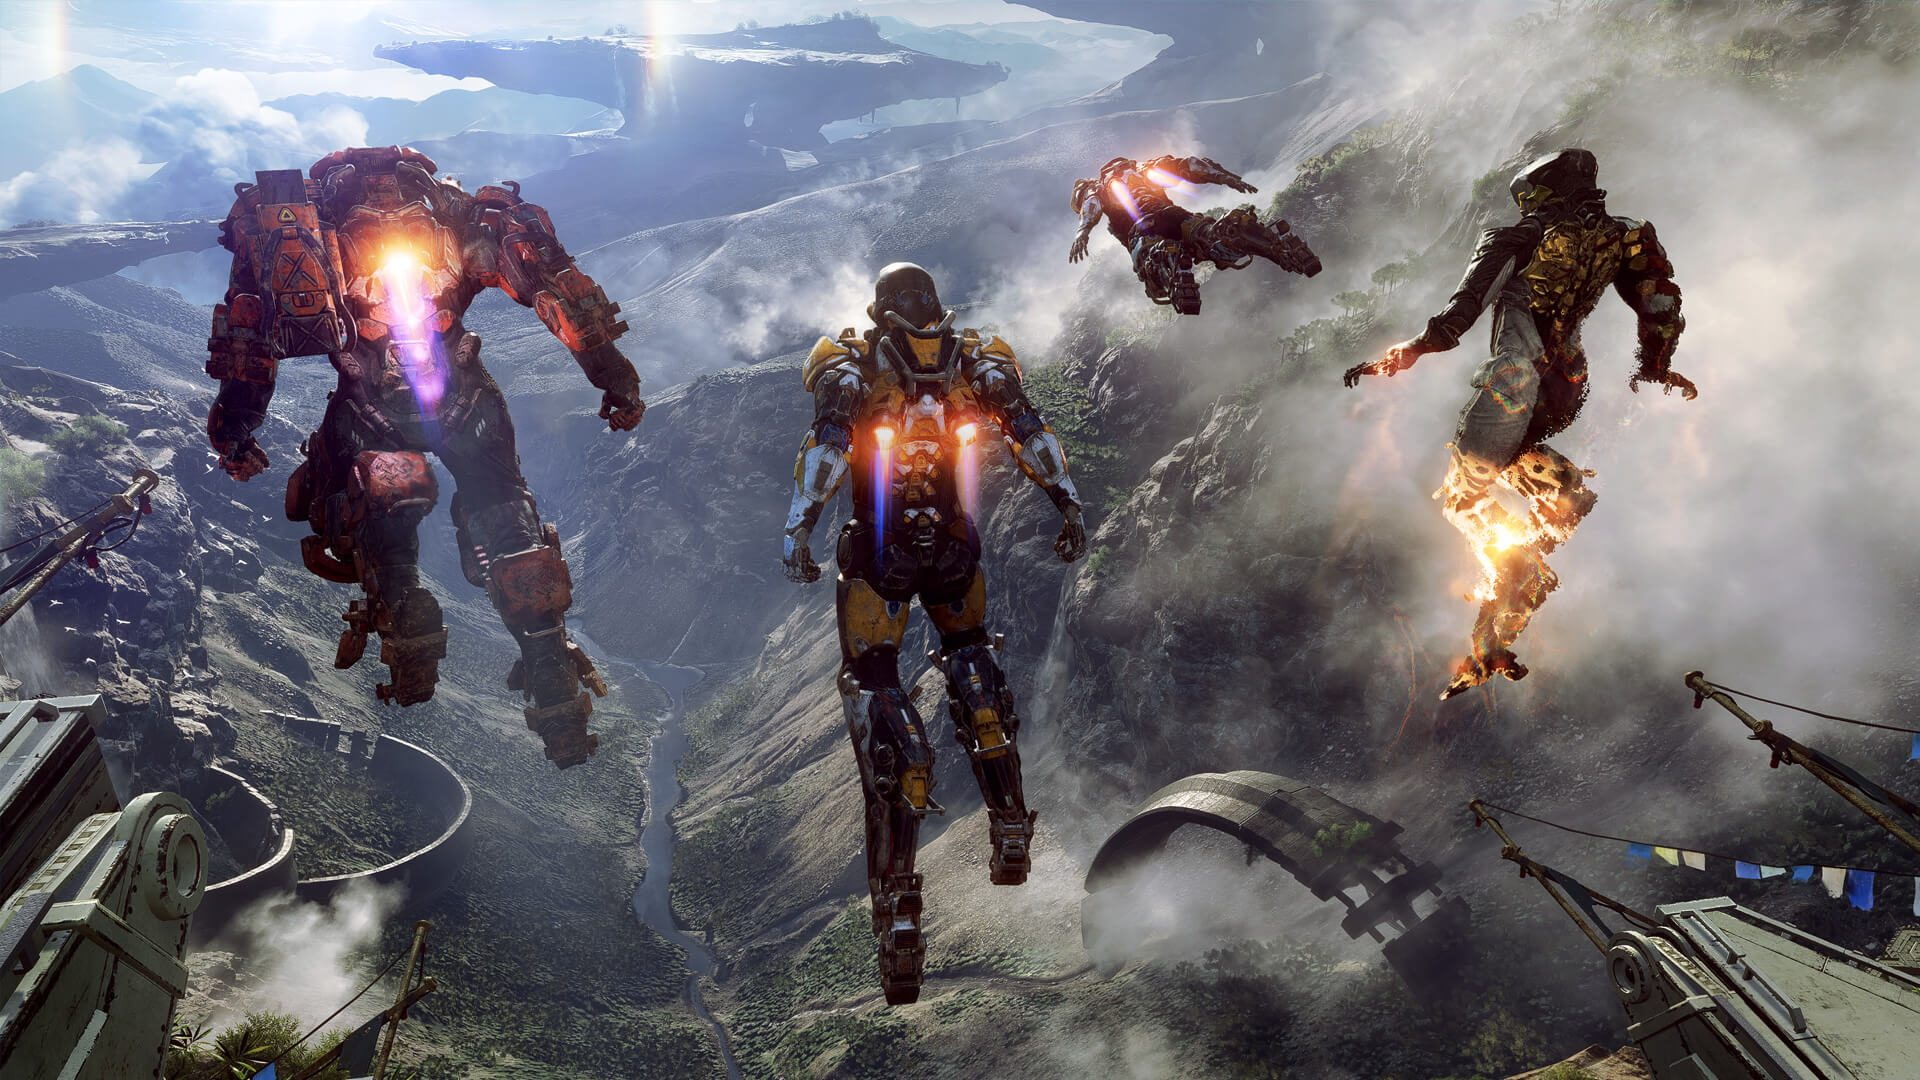 You can pre-load the Anthem demo even if you don't have a VIP code.